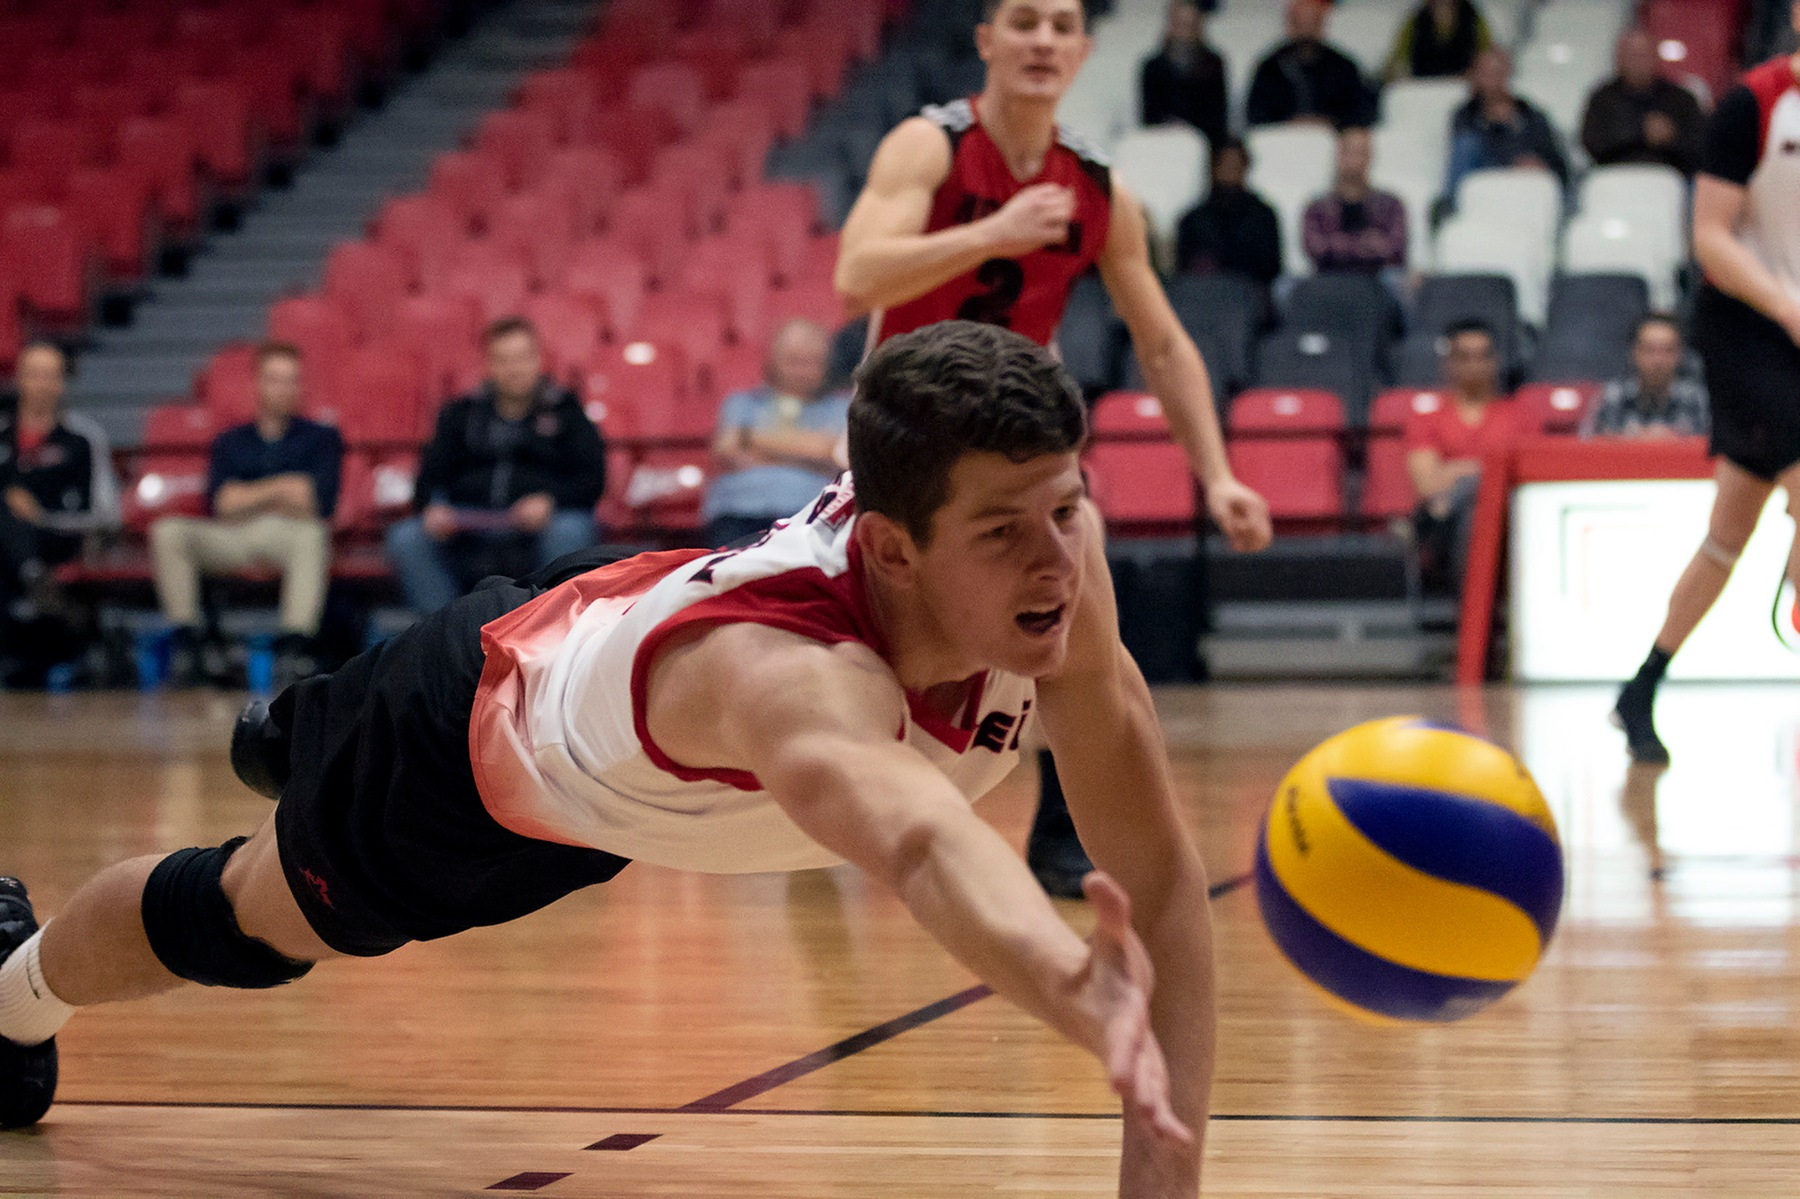 Daniel Thiessen lays out for a scramble ball during the Winnipeg Wesmen's straight-sets win over the UBCO Heat on Saturday, Nov. 3, 2018. (David Larkins/Wesmen Athletics)